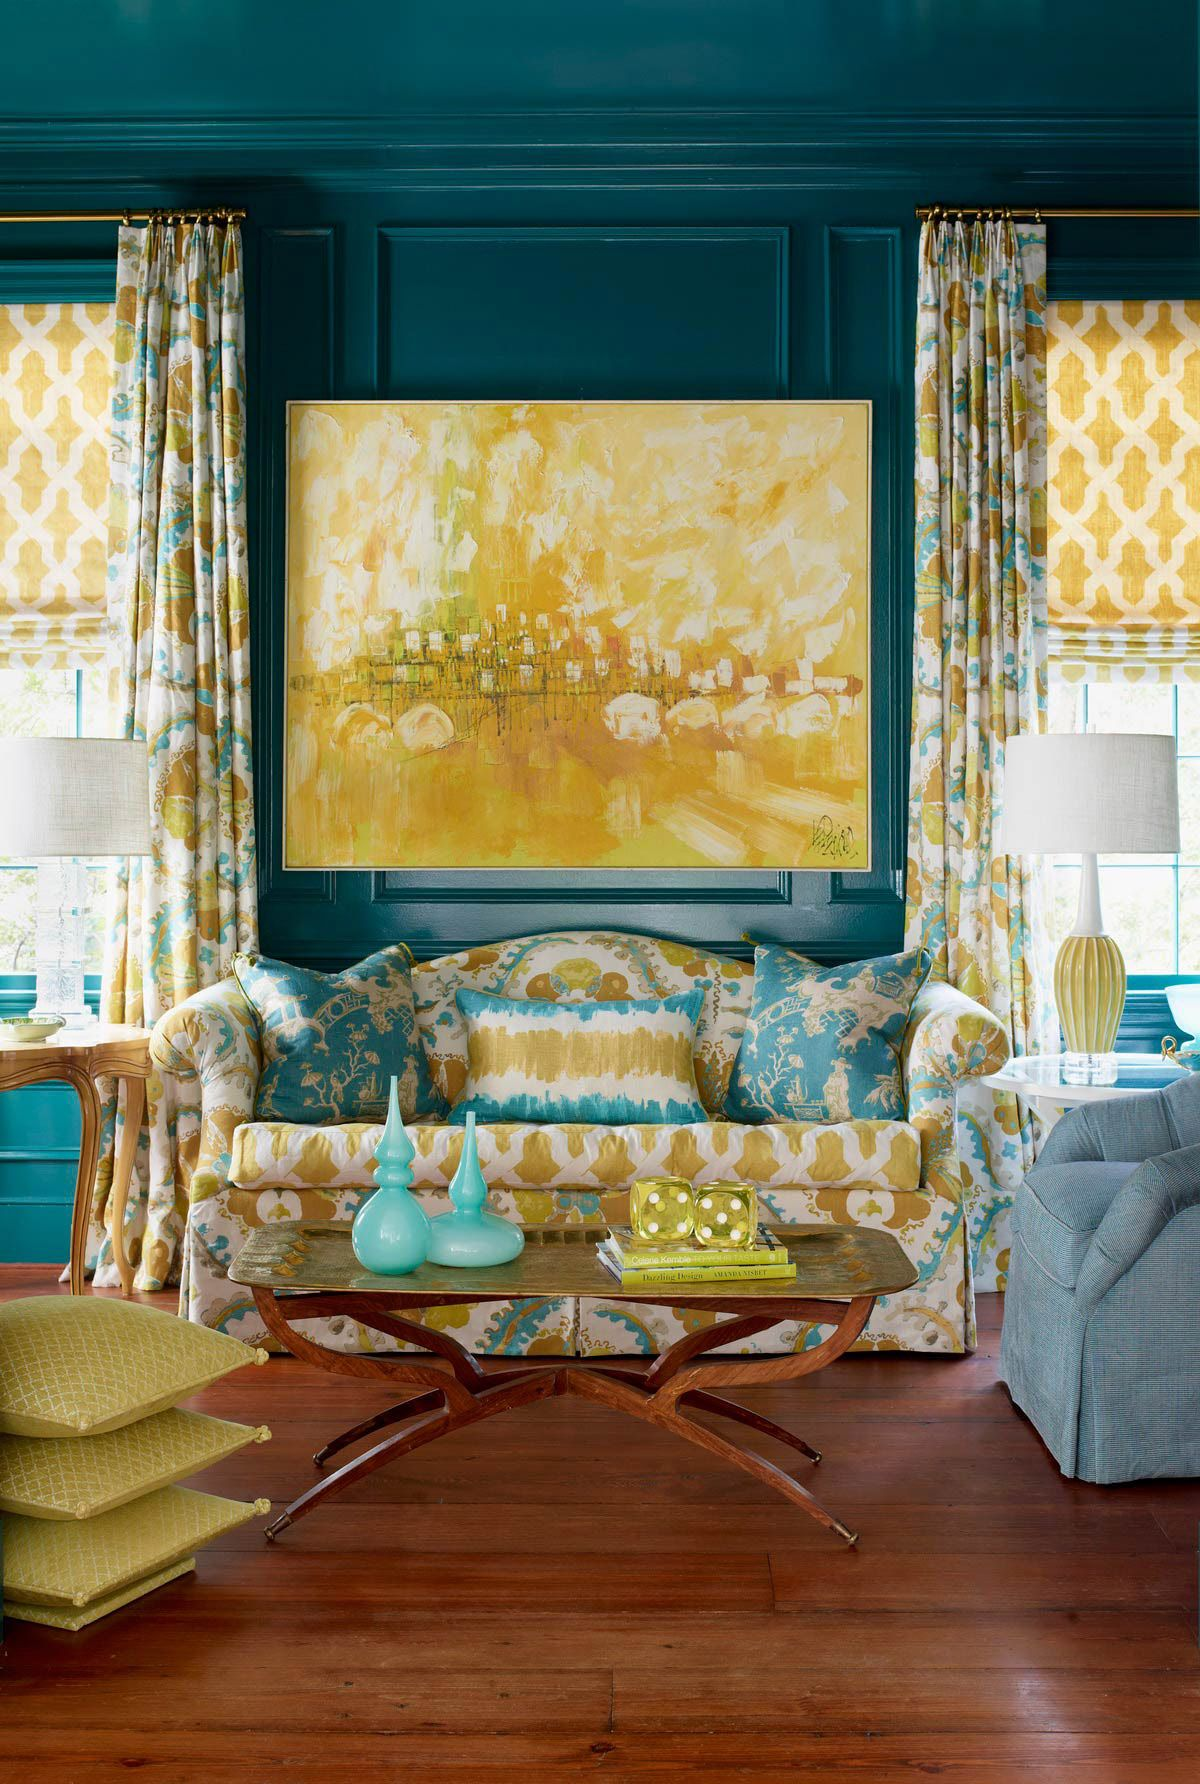 Teal Painted Living Room With Turquoise And Yellow Gold